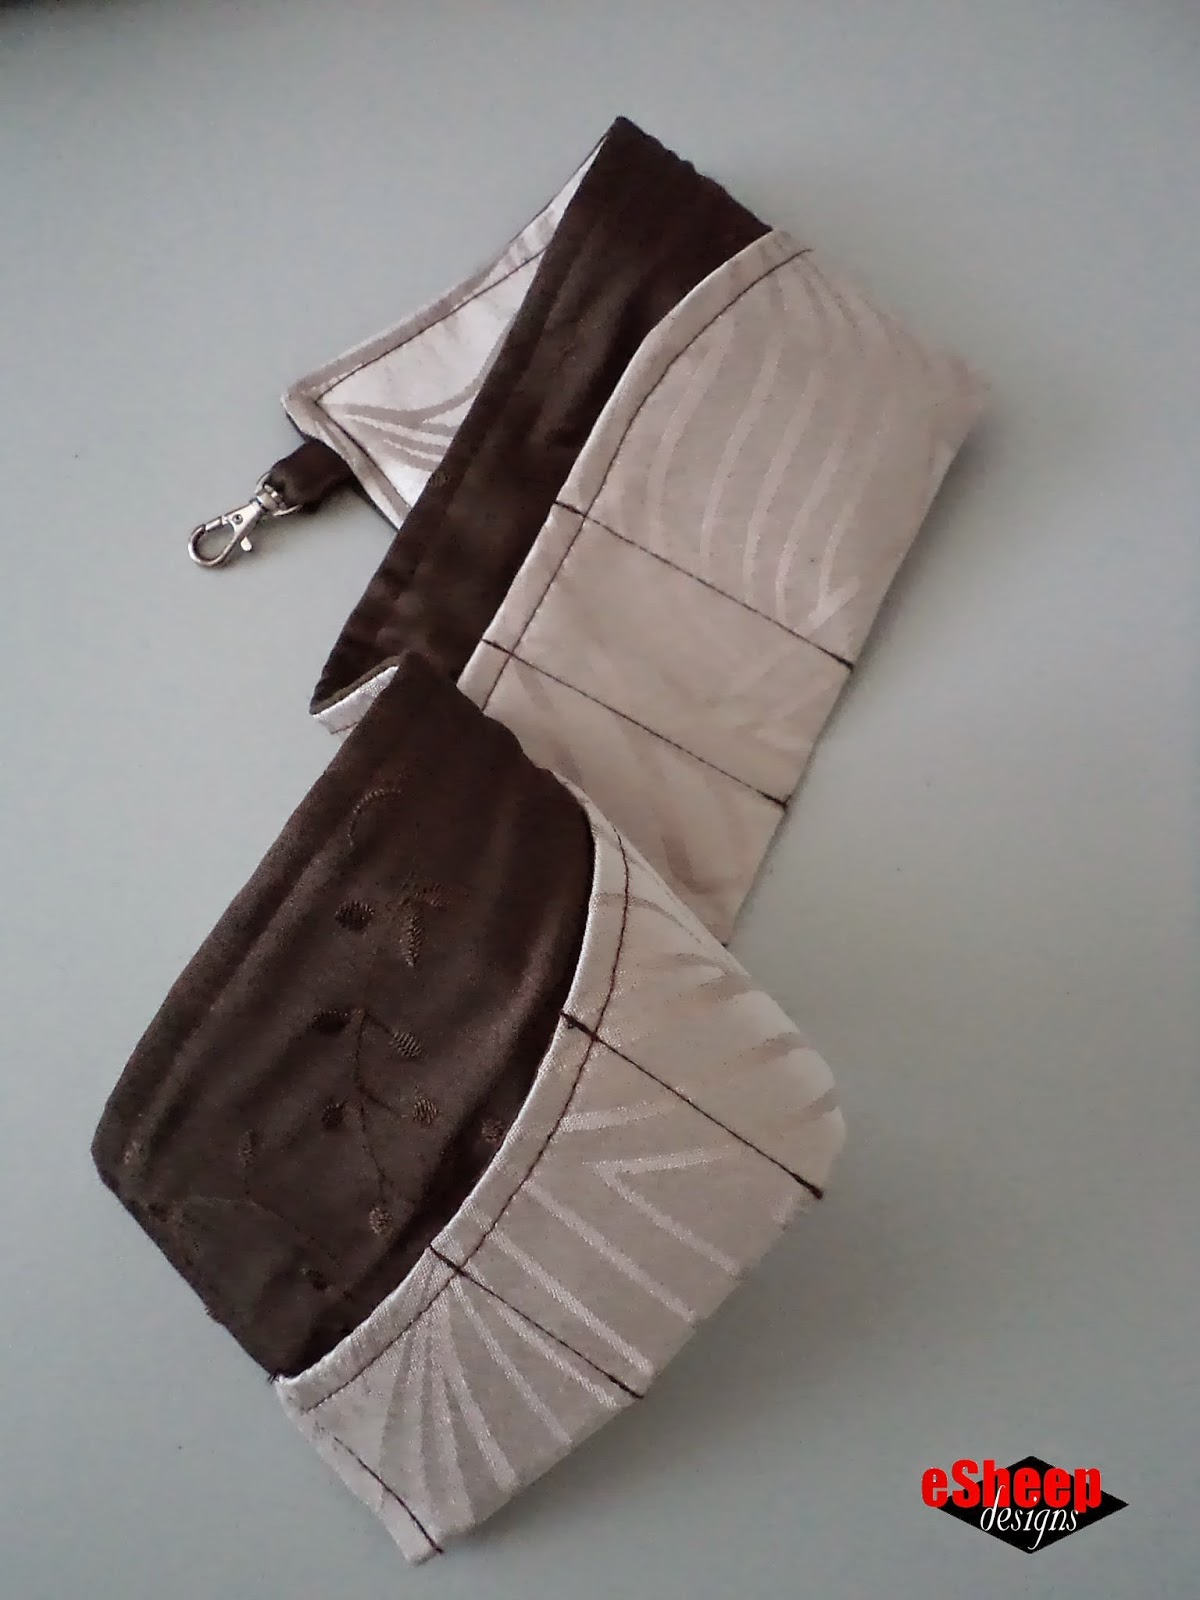 Wave Purse Organizer by eSheep Designs